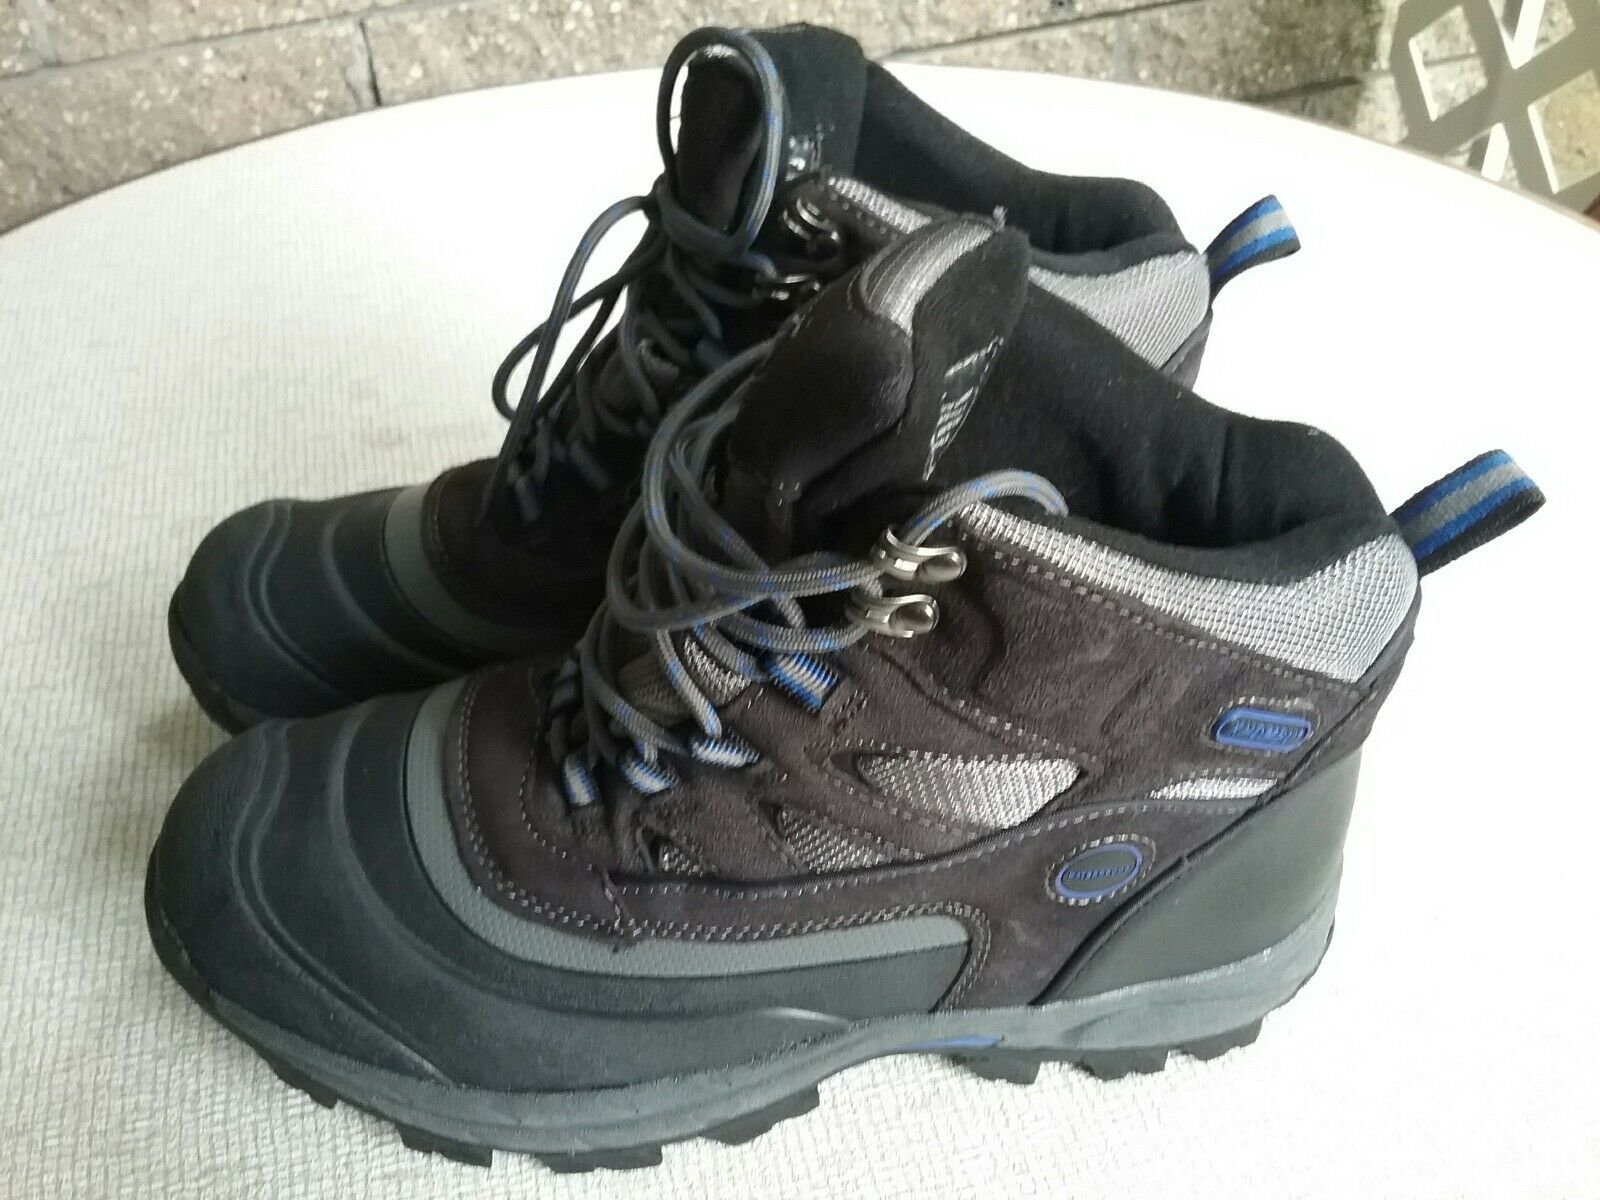 Mens Khombu Waterproof, Snow, Winter  Ankle Boots US Size 11 M